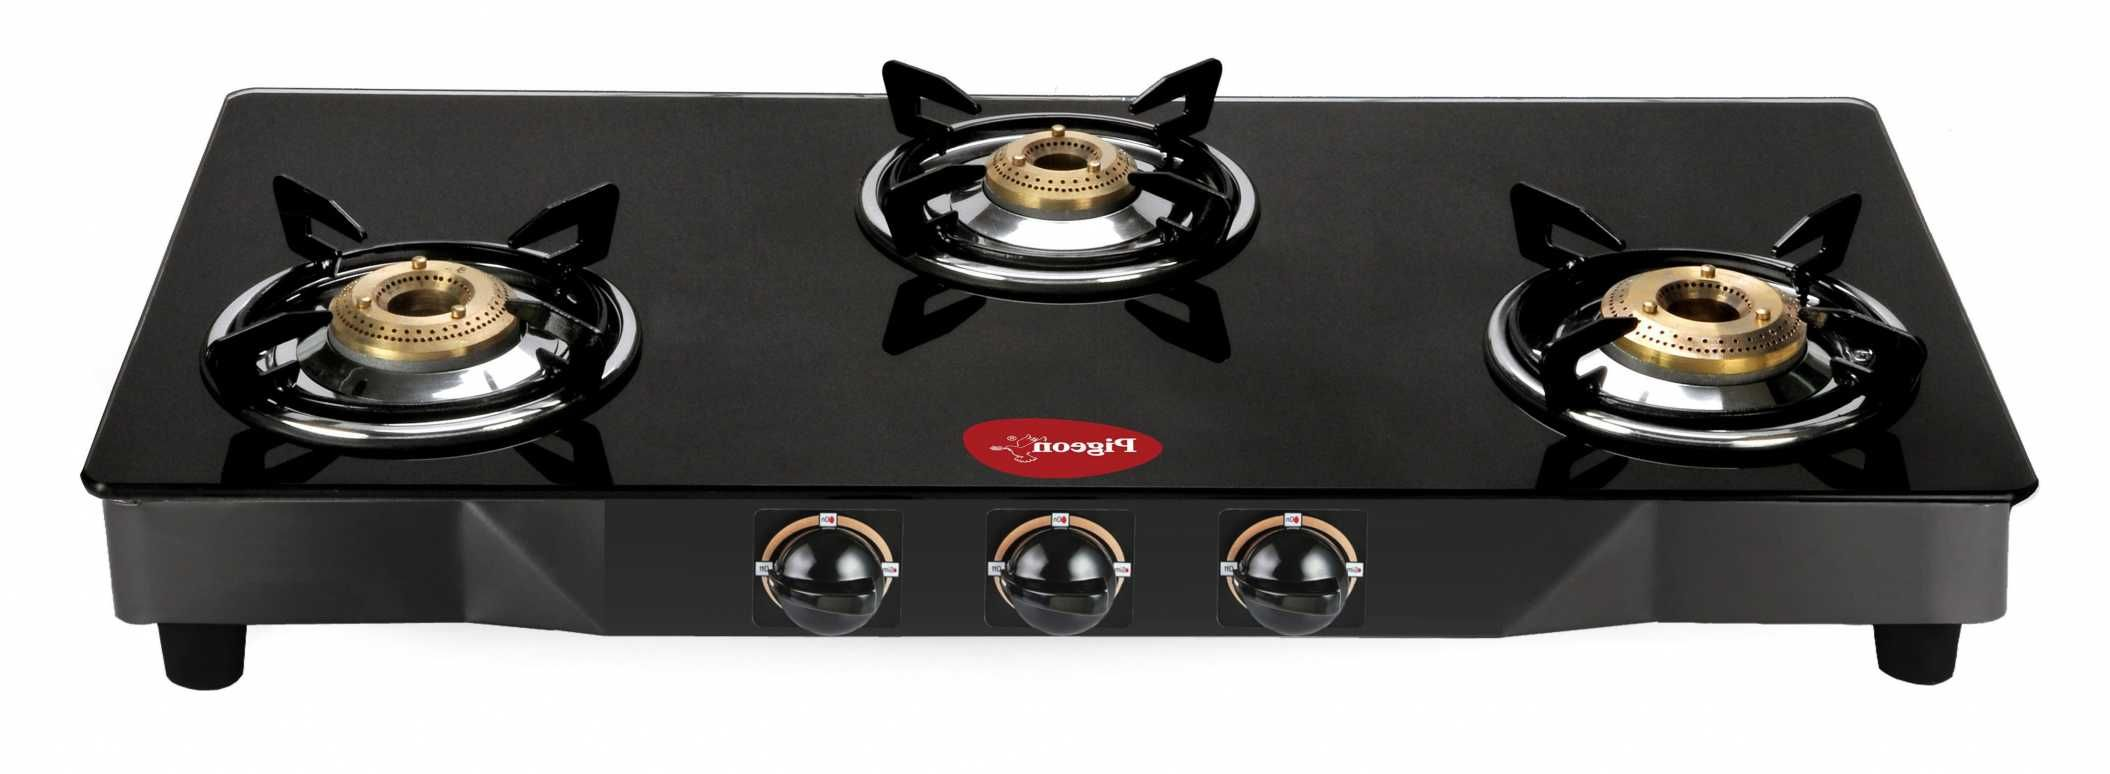 Gas From Stove Beautiful Lg Ovens And Cooktops Beautiful Oven Won T Gas Stove Burner Stove Gas Stove